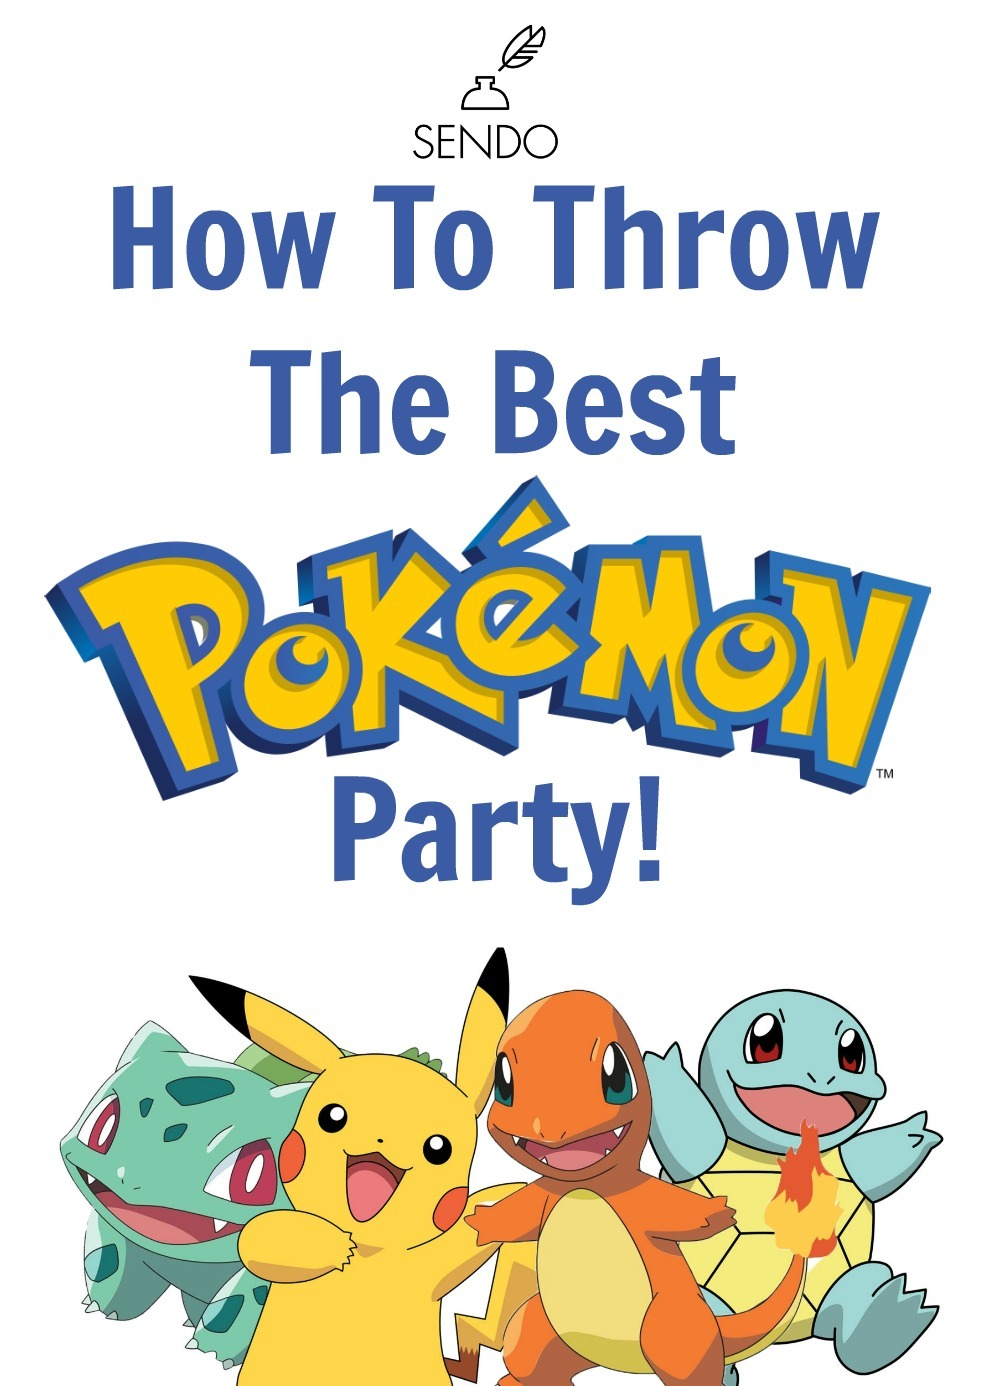 How To Throw The Best Pokemon Party